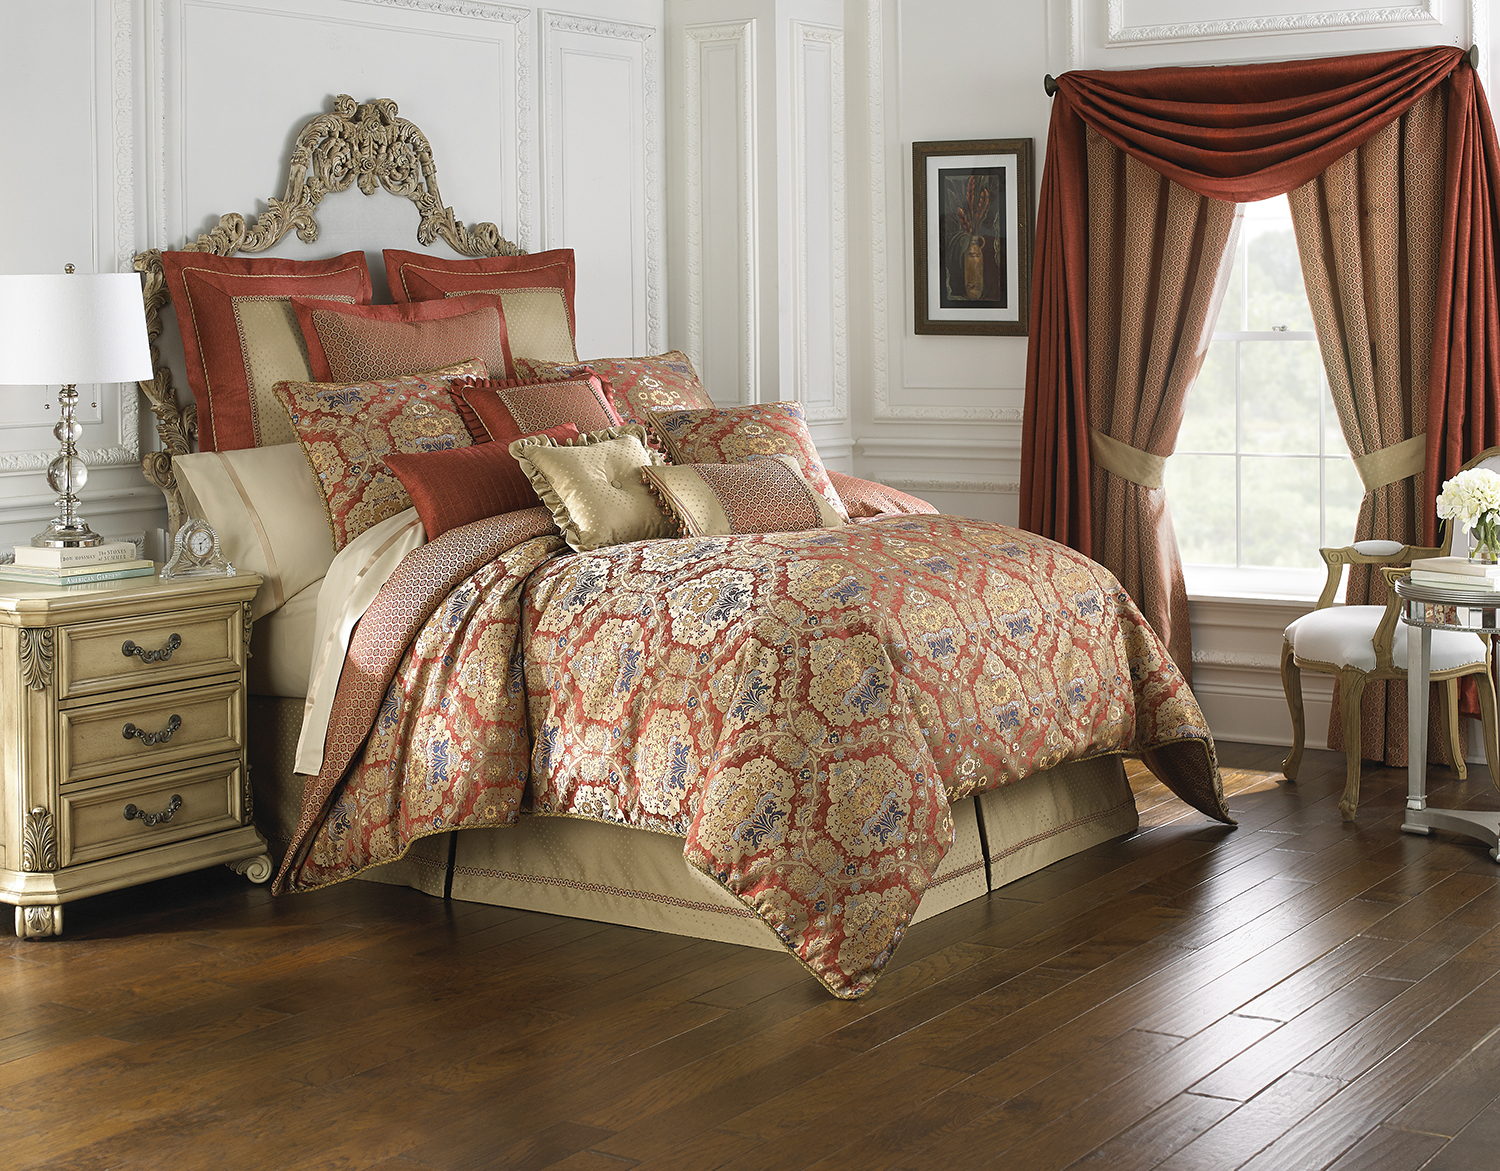 Olympia By Waterford Luxury Bedding Beddingsuperstore Com